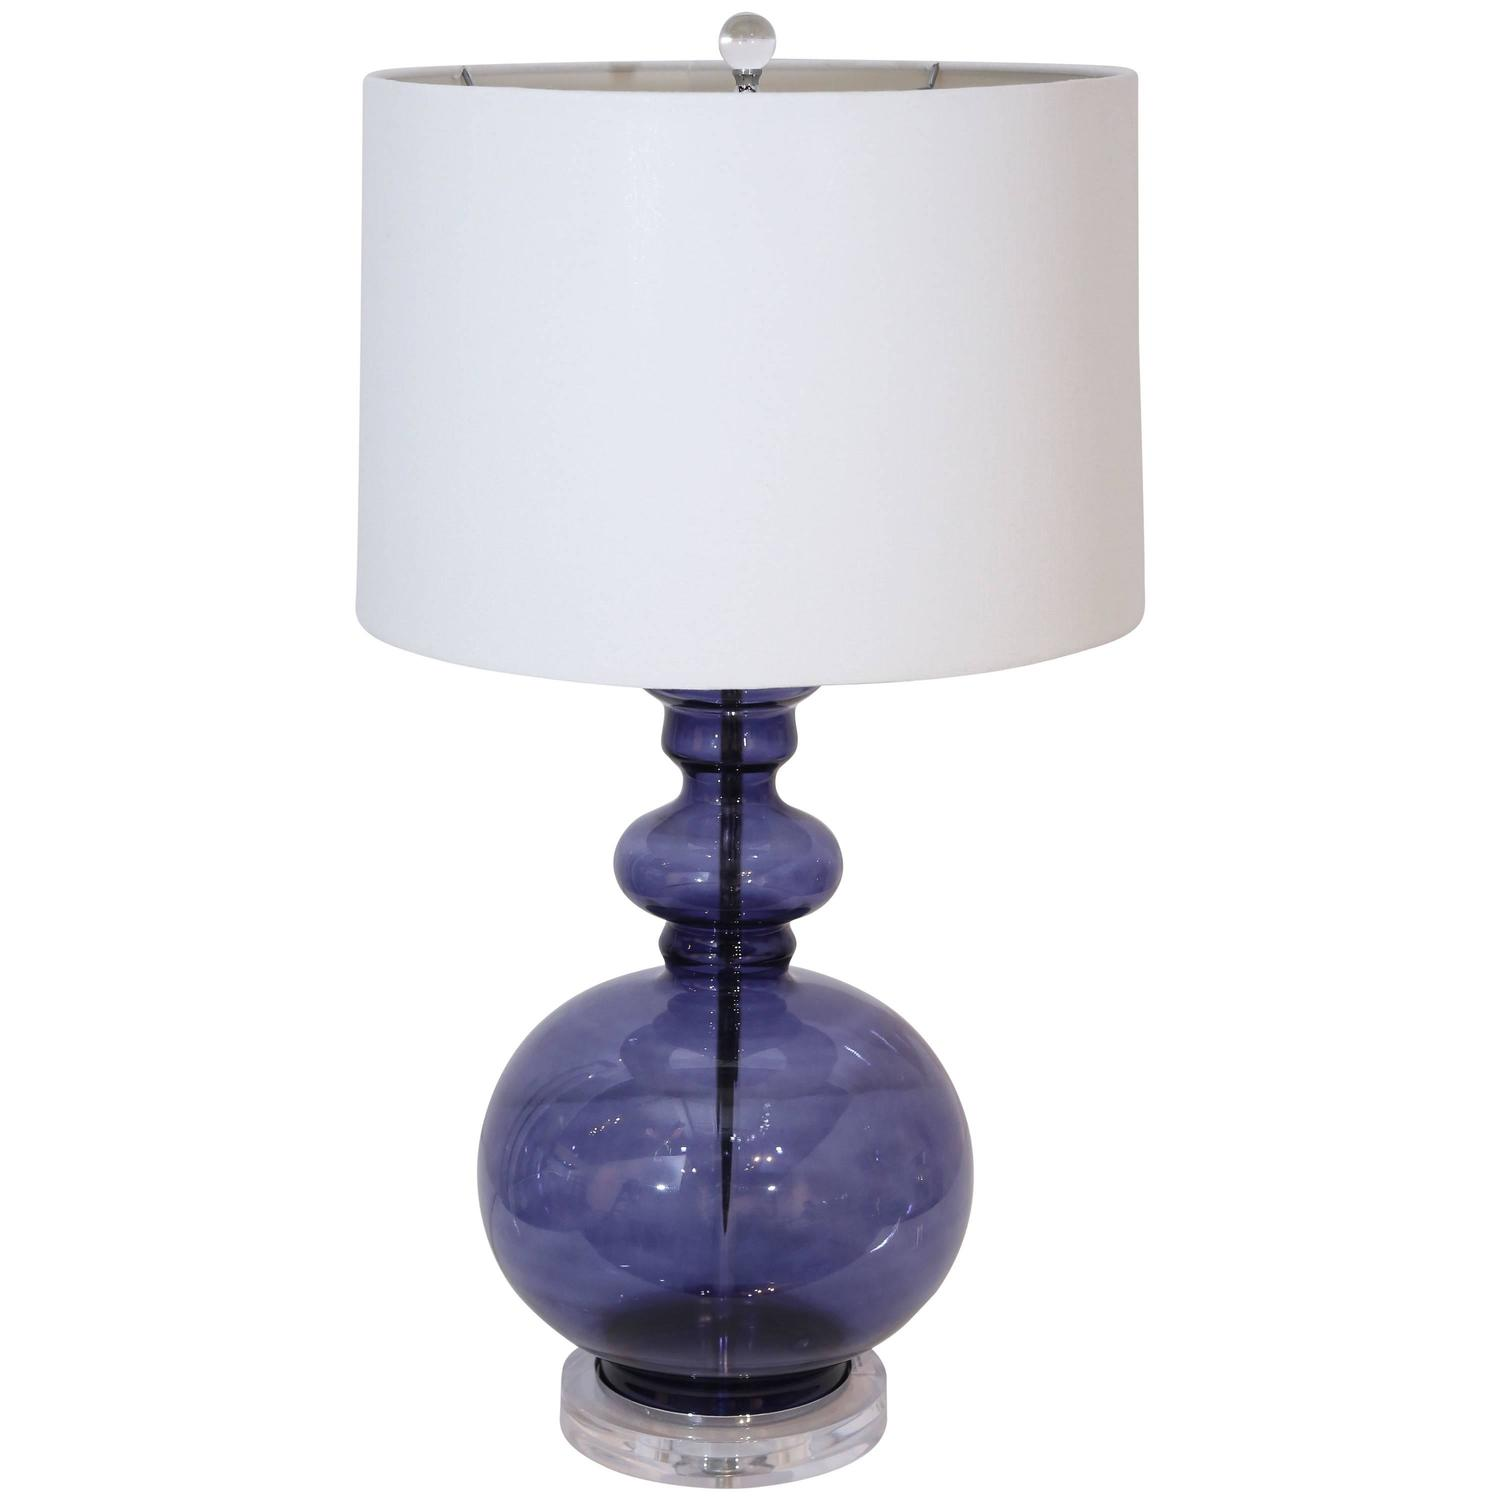 Blue glass lamp gourd table lamp at 1stdibs for Images of table lamps